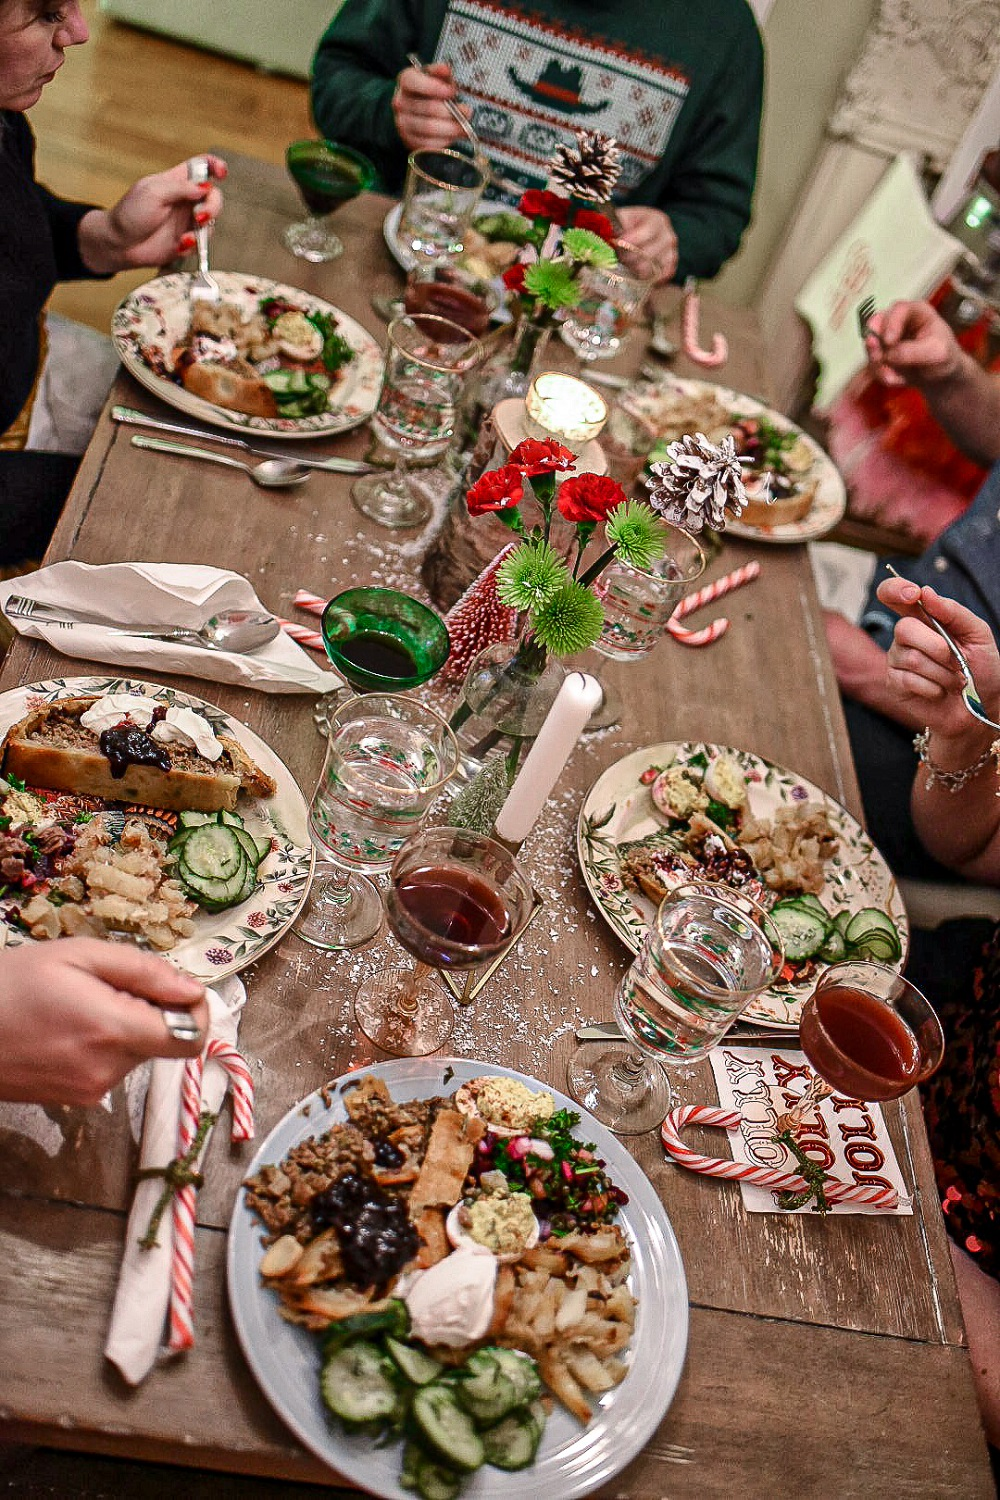 Hygge Holiday Dinner Party A Scandinavian And Swedish Inspired Dinner Menu For A Cozy And Intimate Friendsmas This Holiday Season Holiday Dinner Party Holiday Dinner Dinner Menu